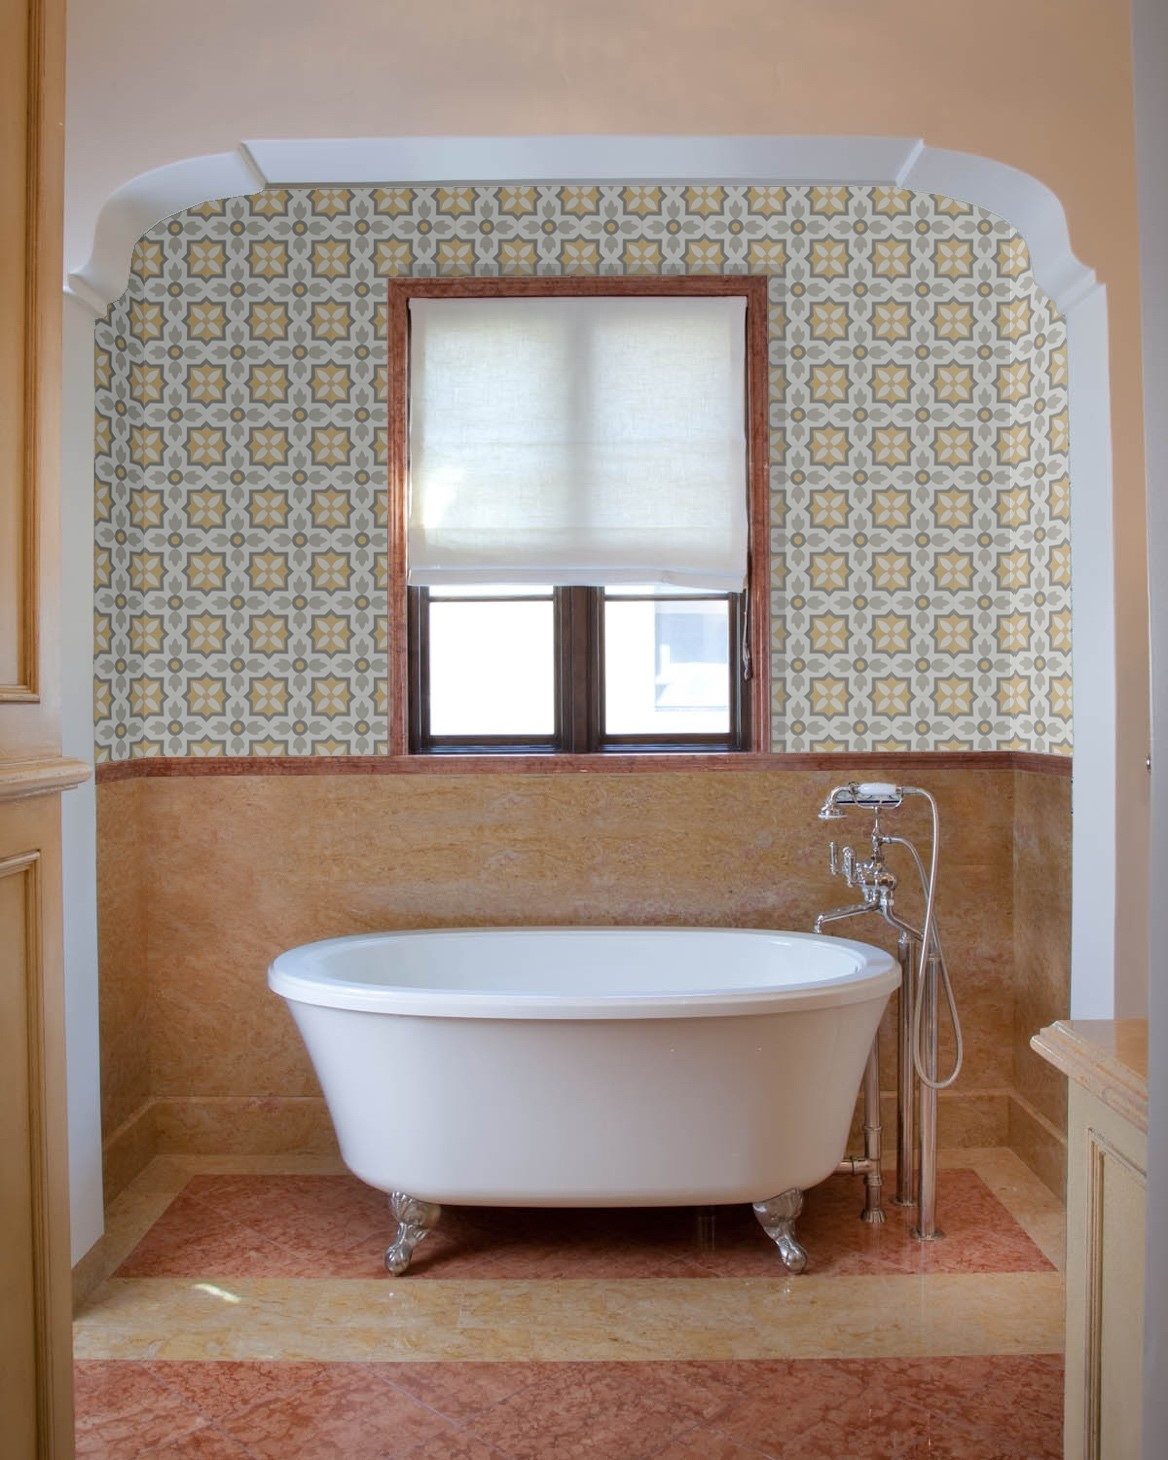 Designer Paul Schatz uses Granada Tile's cement tile pattern, Flor, to create a classic and elegant bathroom design